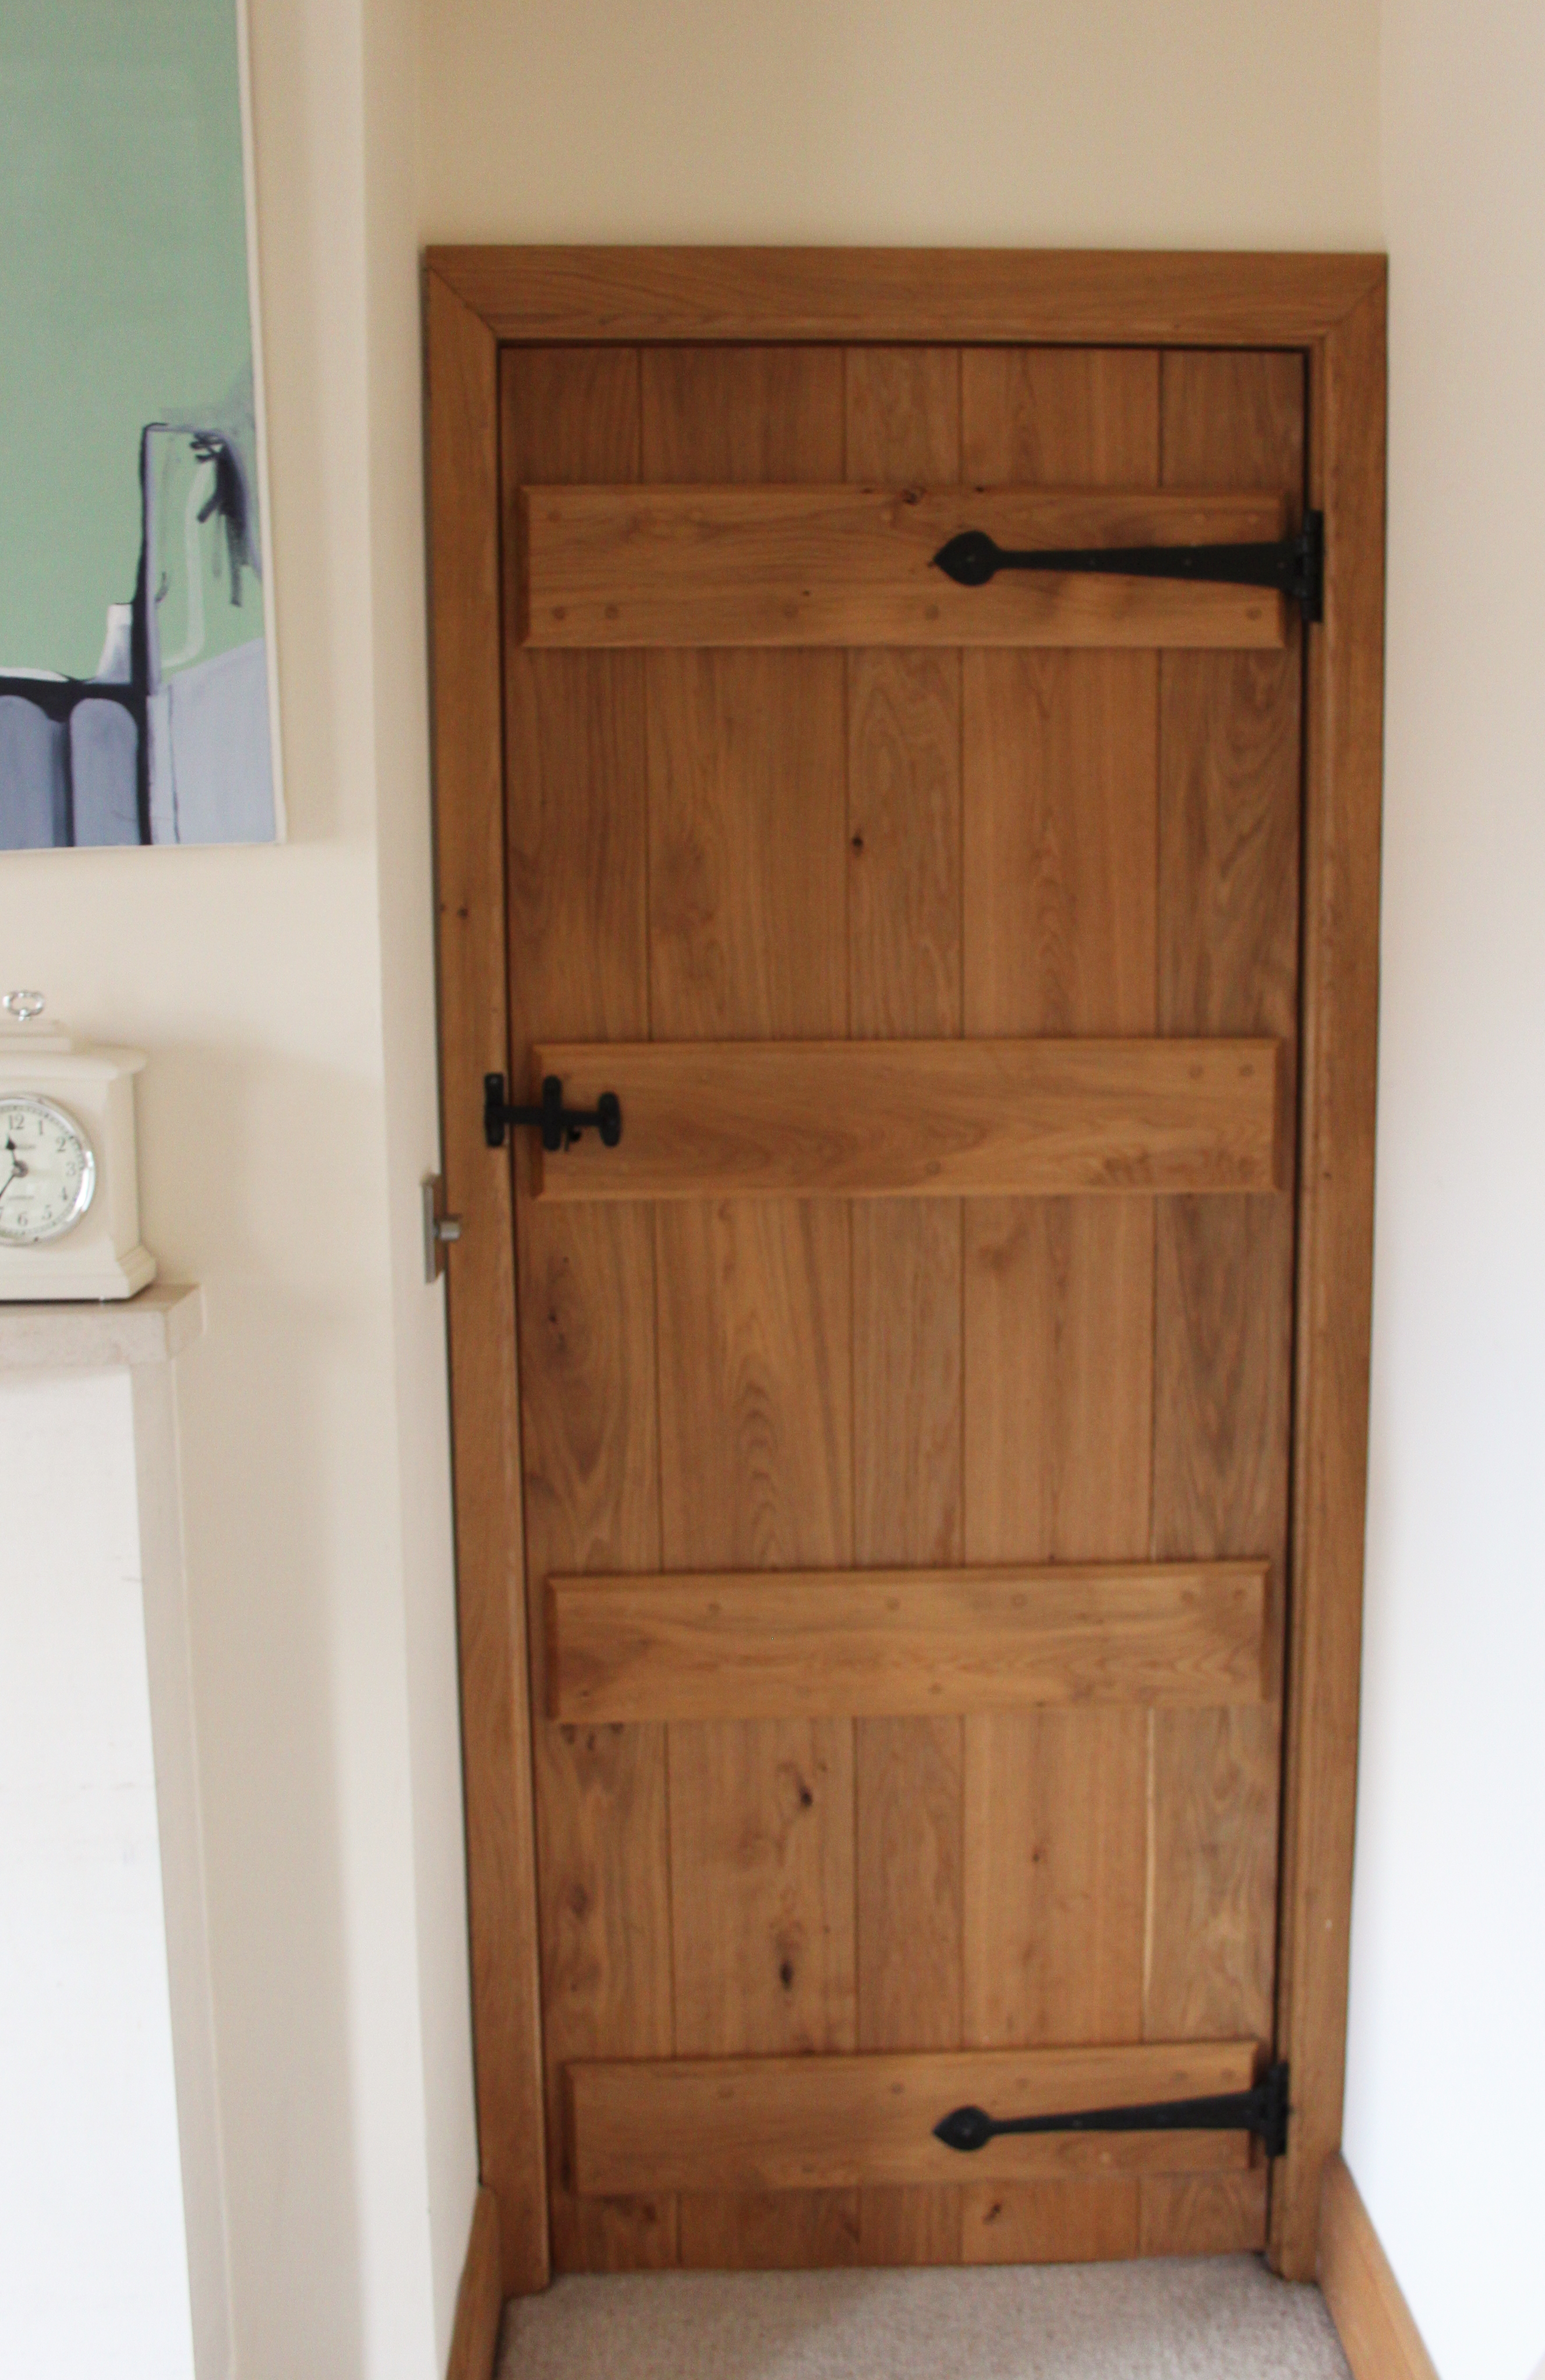 Stunning bespoke solid oak ledge and brace door with traditional latch and hinge stunning feature